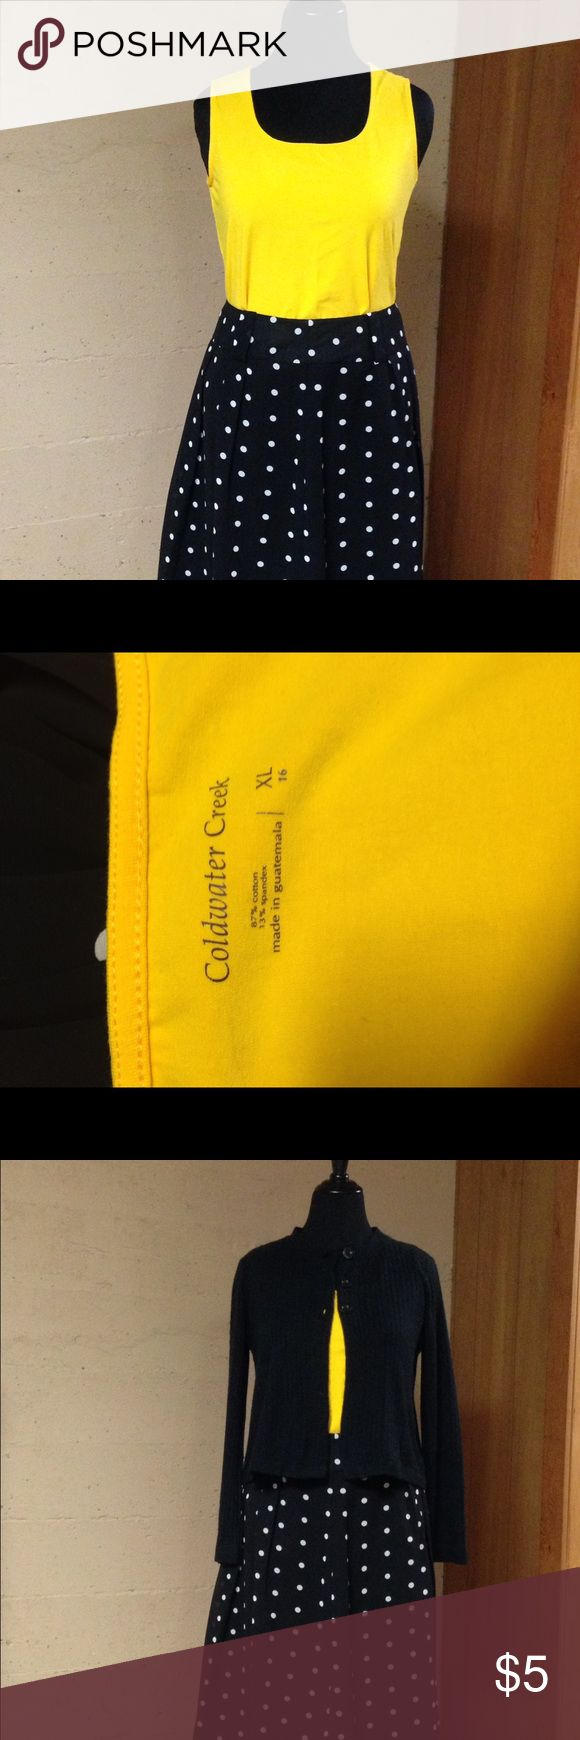 Bright yellow tank top This bright yellow tank top is made by Coldwater Creek. It is a cotton spandex blend and will go under any jacket or sweater to complete an outfit. It can also be worn on its own in the summertime. Coldwater Creek Tops Tank Tops